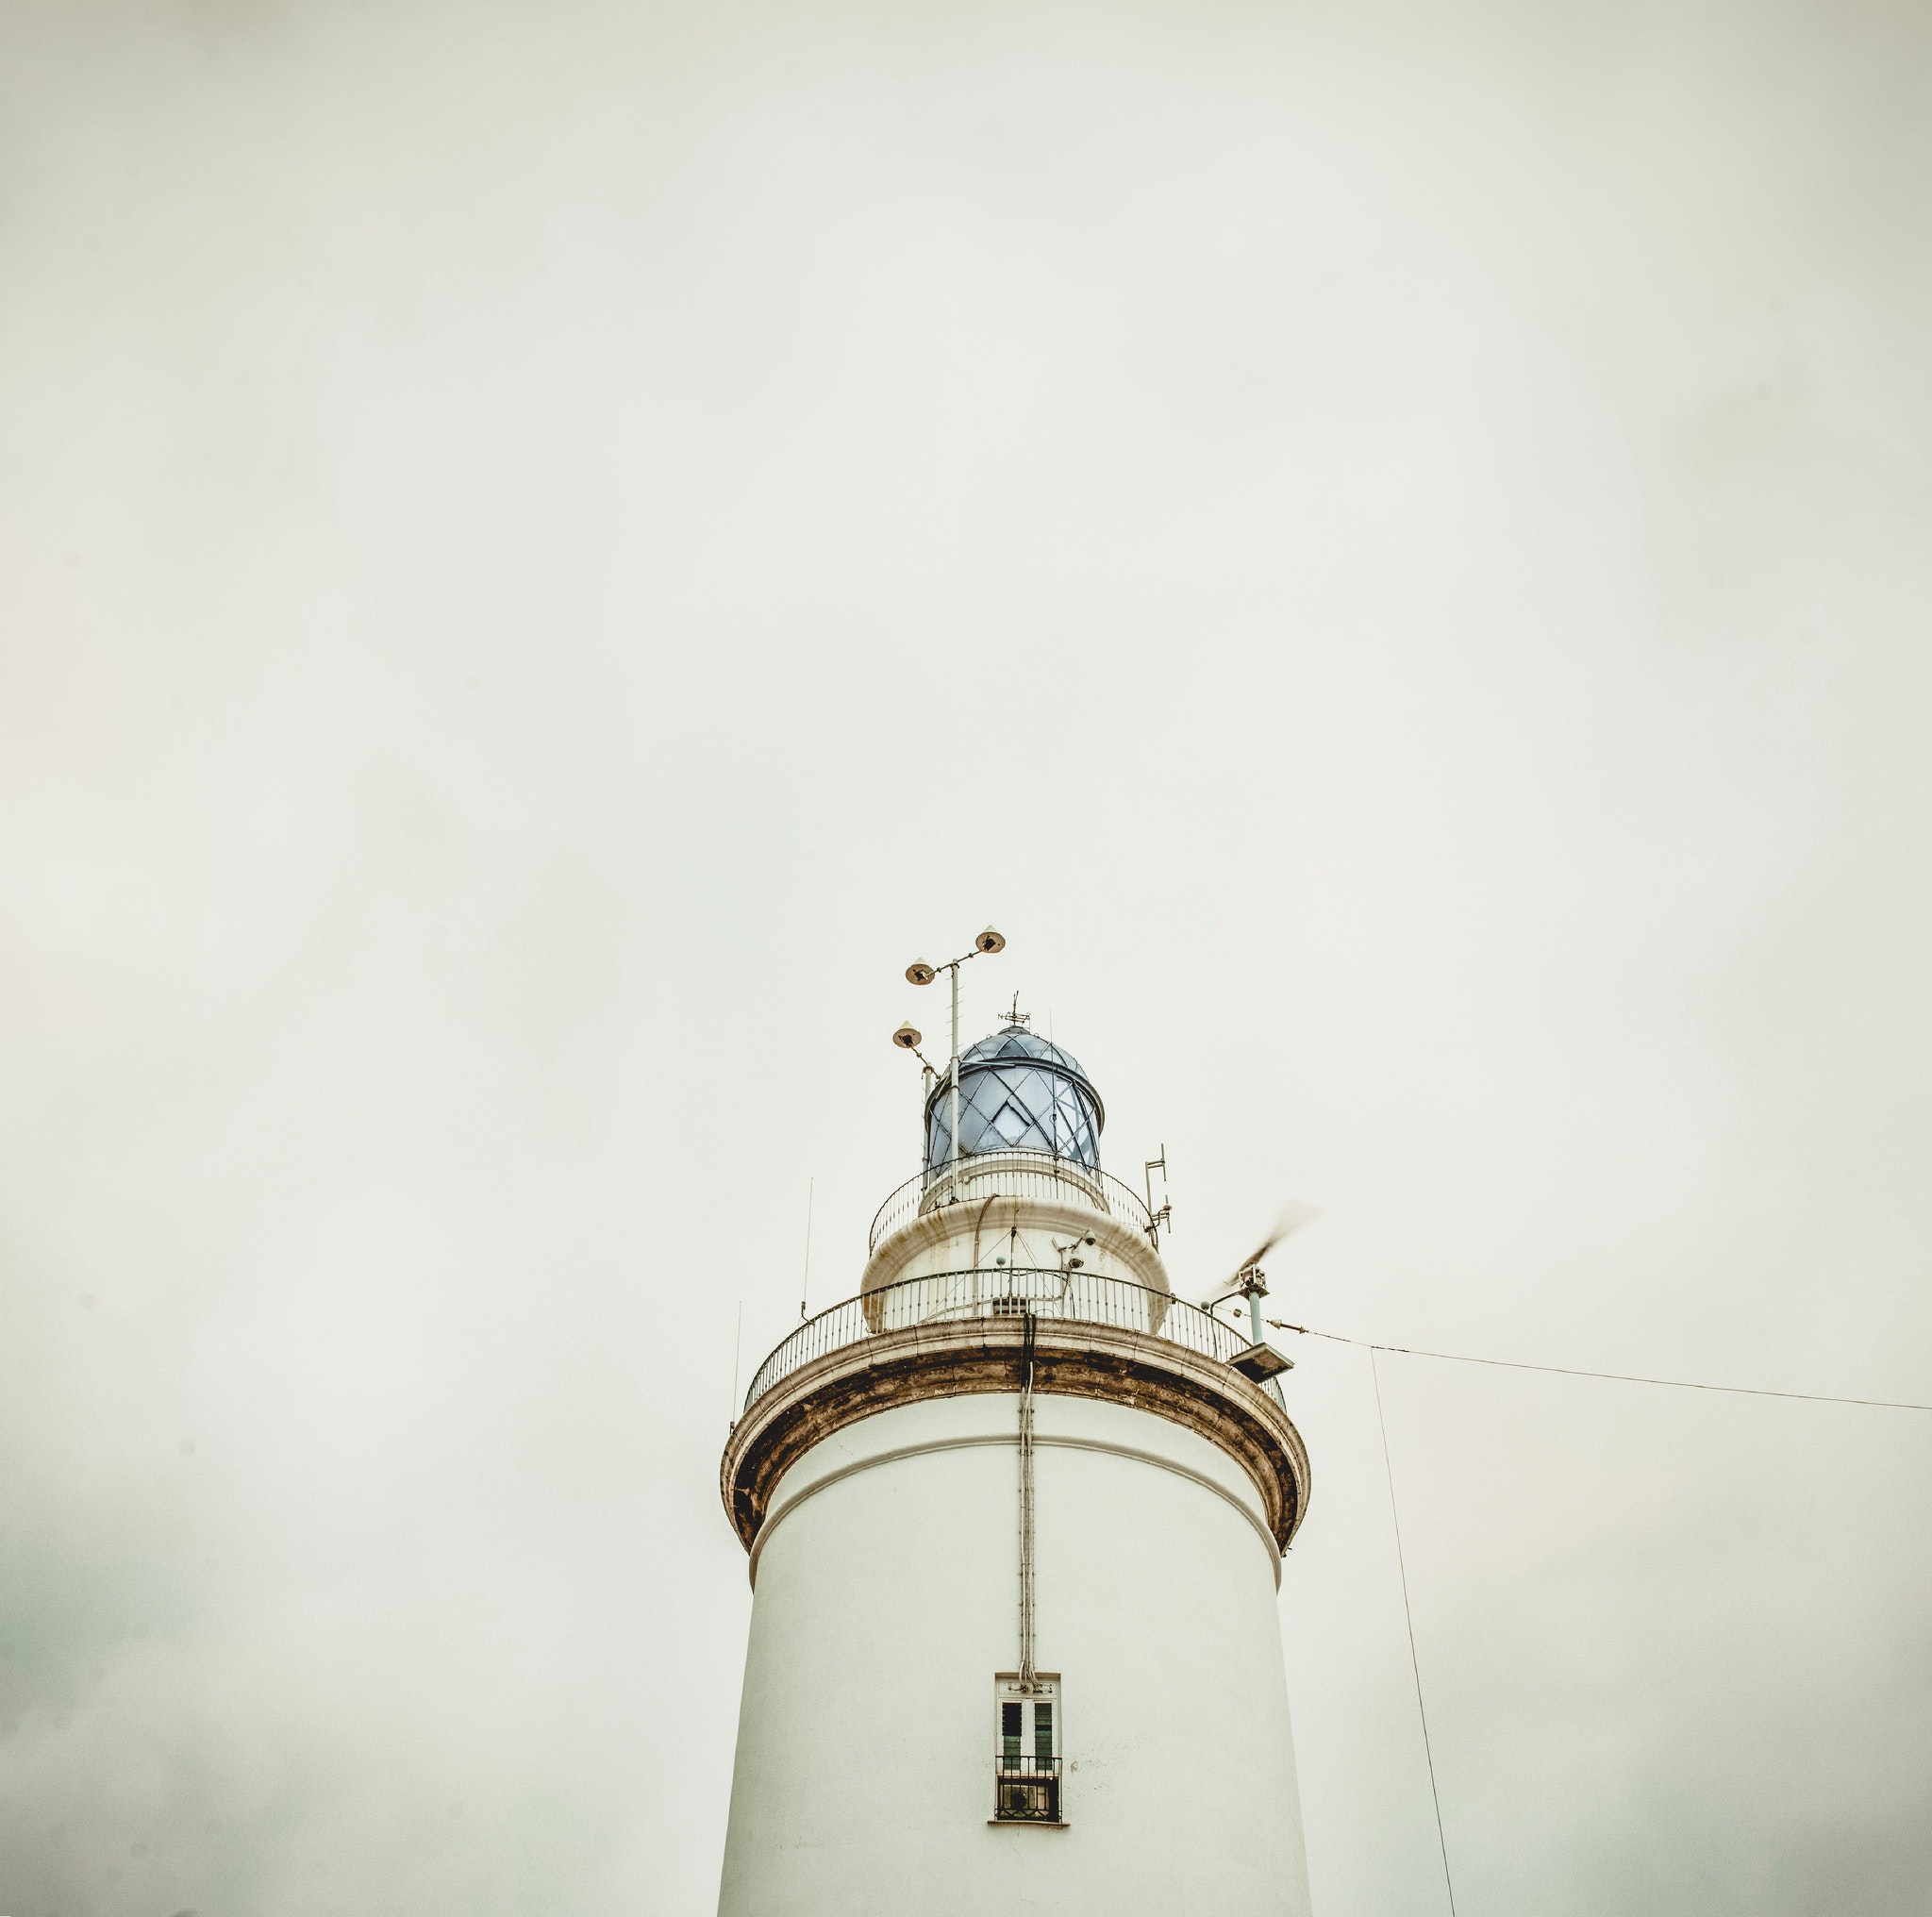 White Light House Under White Sky, Architecture, Building, Cloudy, Fog, HQ Photo